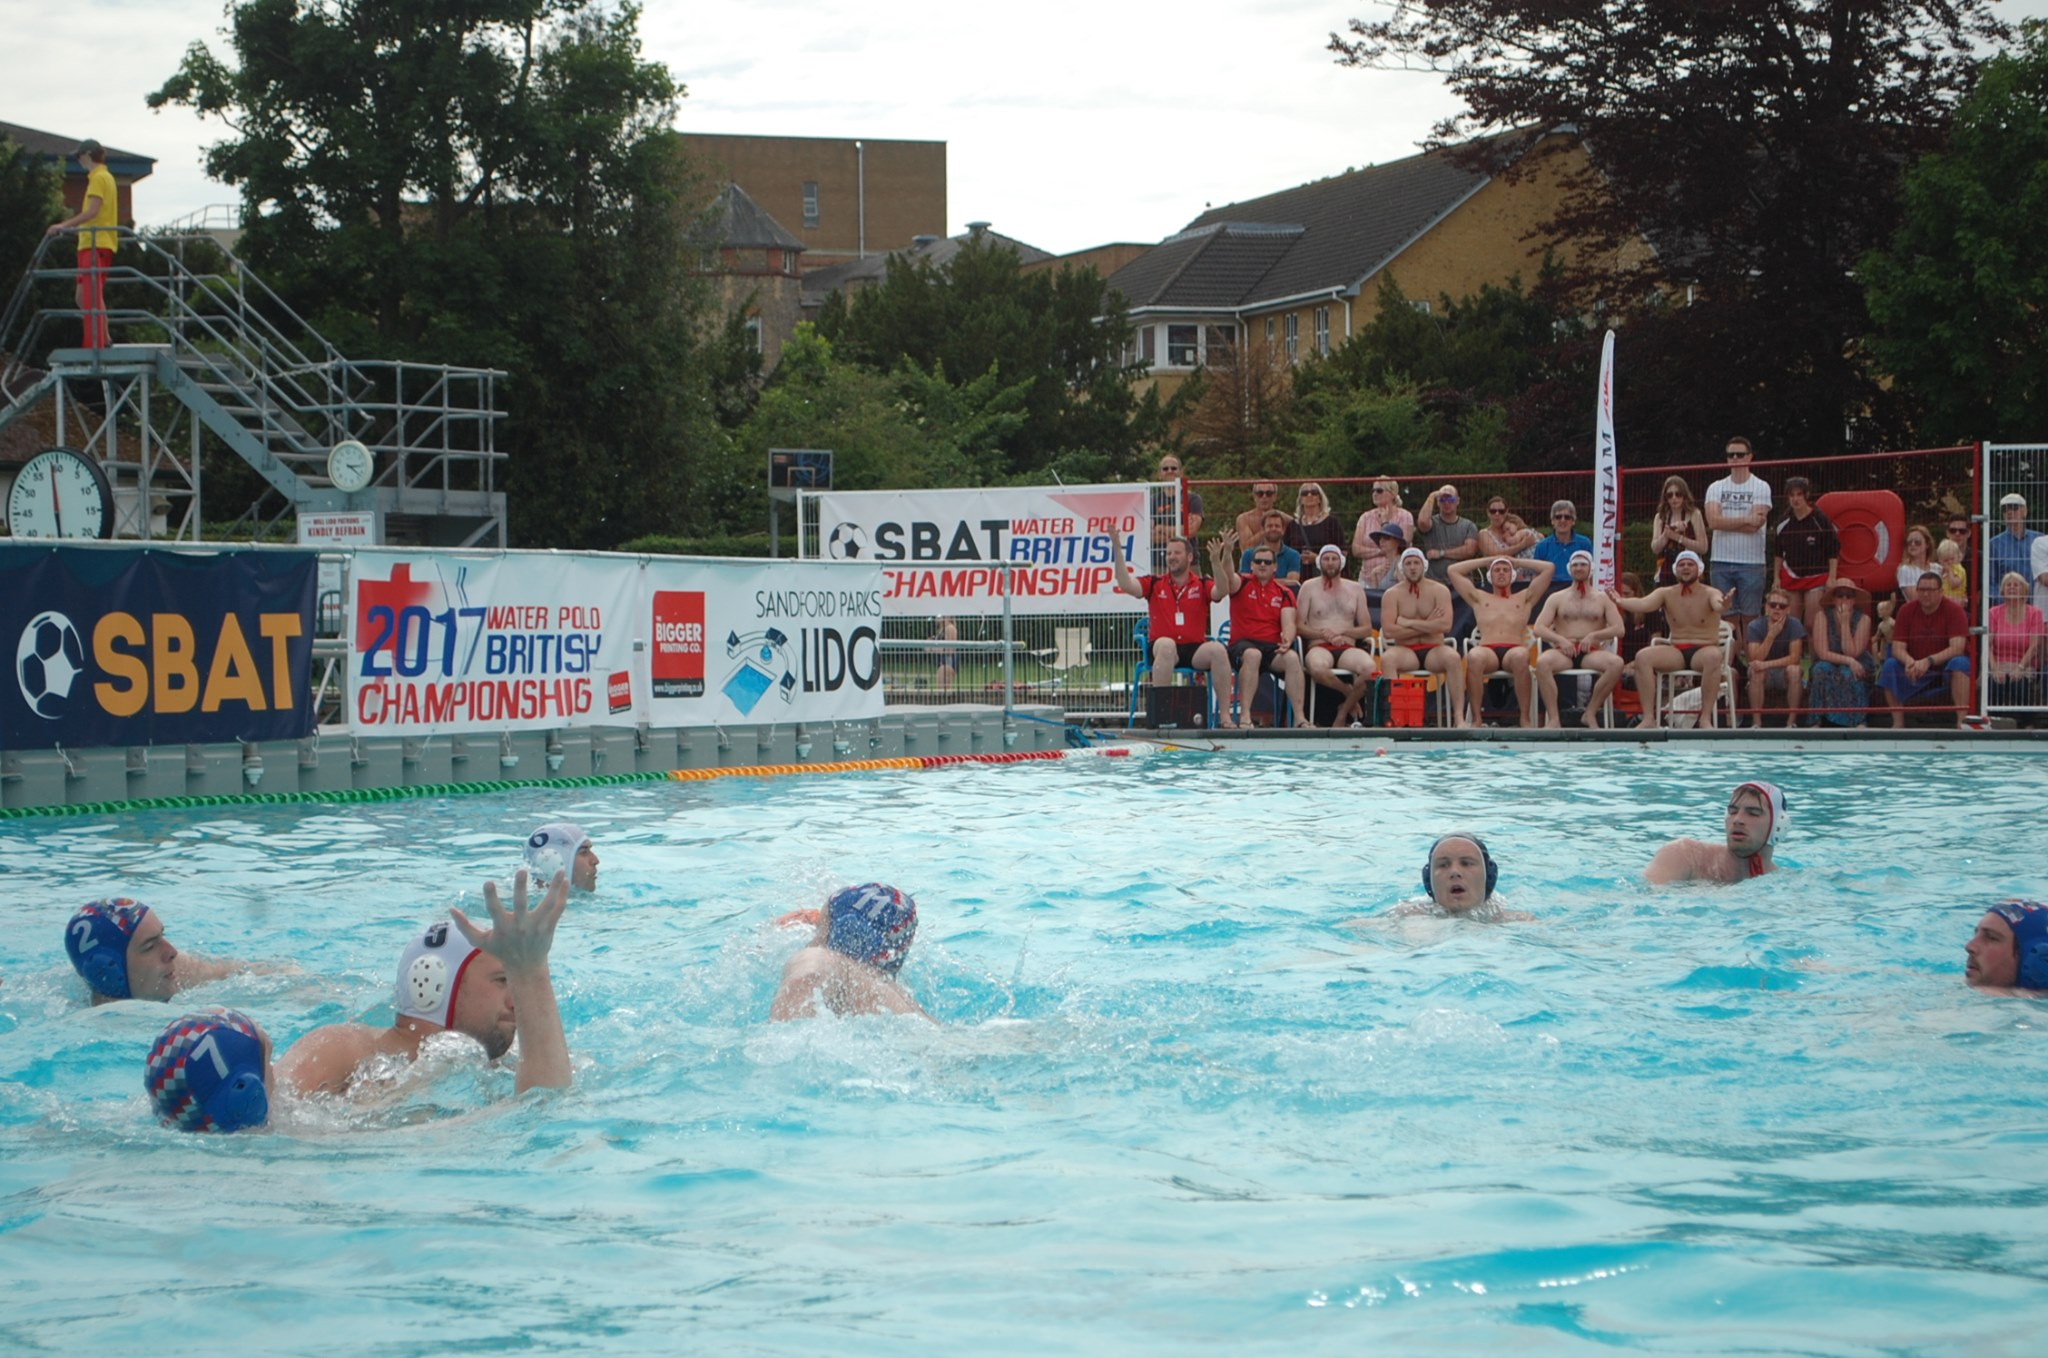 Sandford Parks Lido – Our role in the community